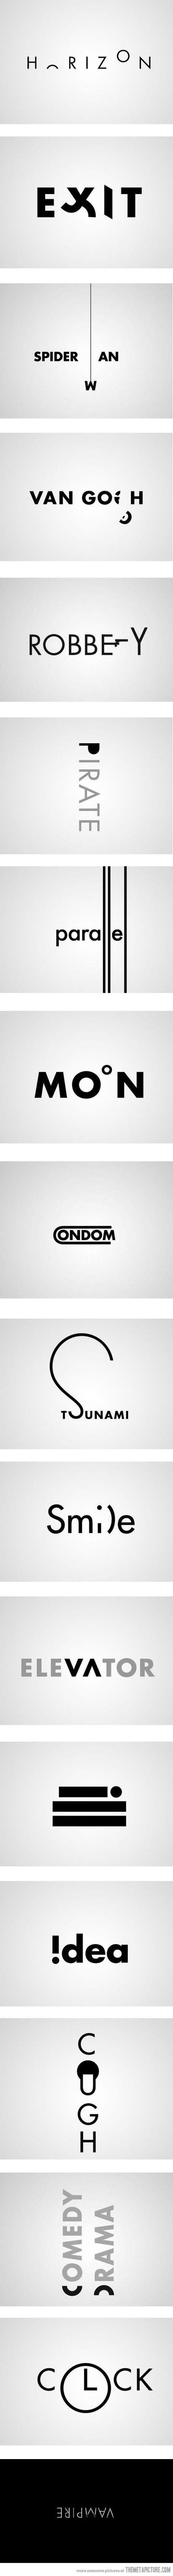 Clever logos